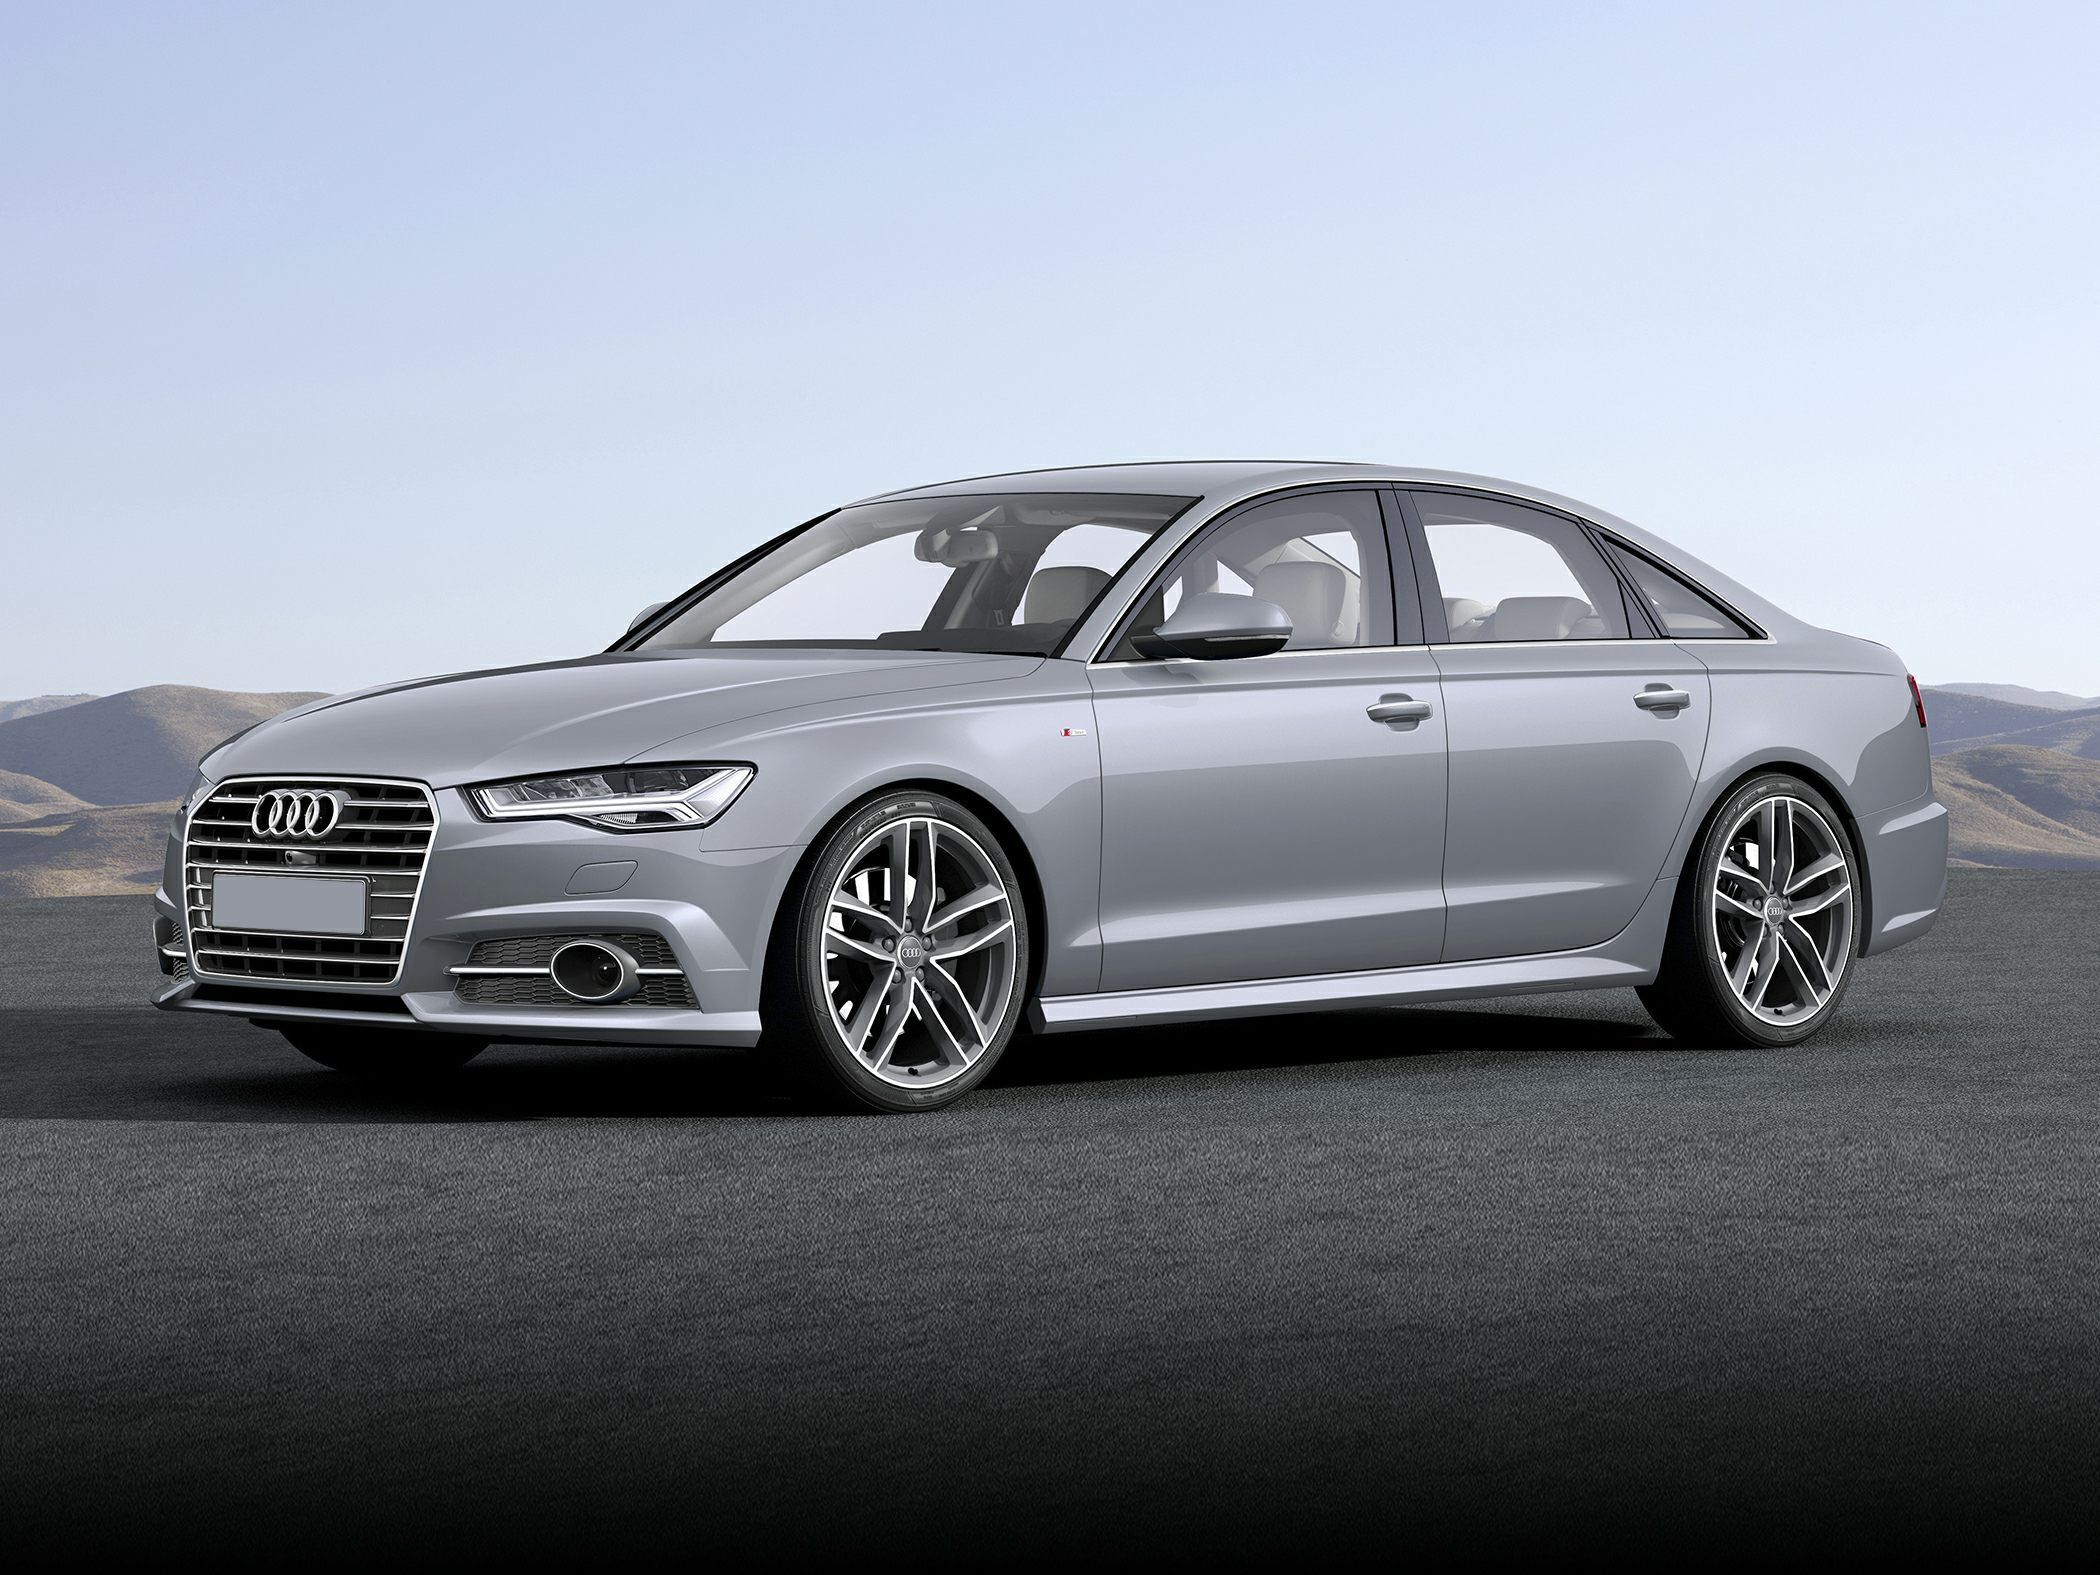 Audi A Deals Prices Incentives Leases Overview - Audi a6 lease